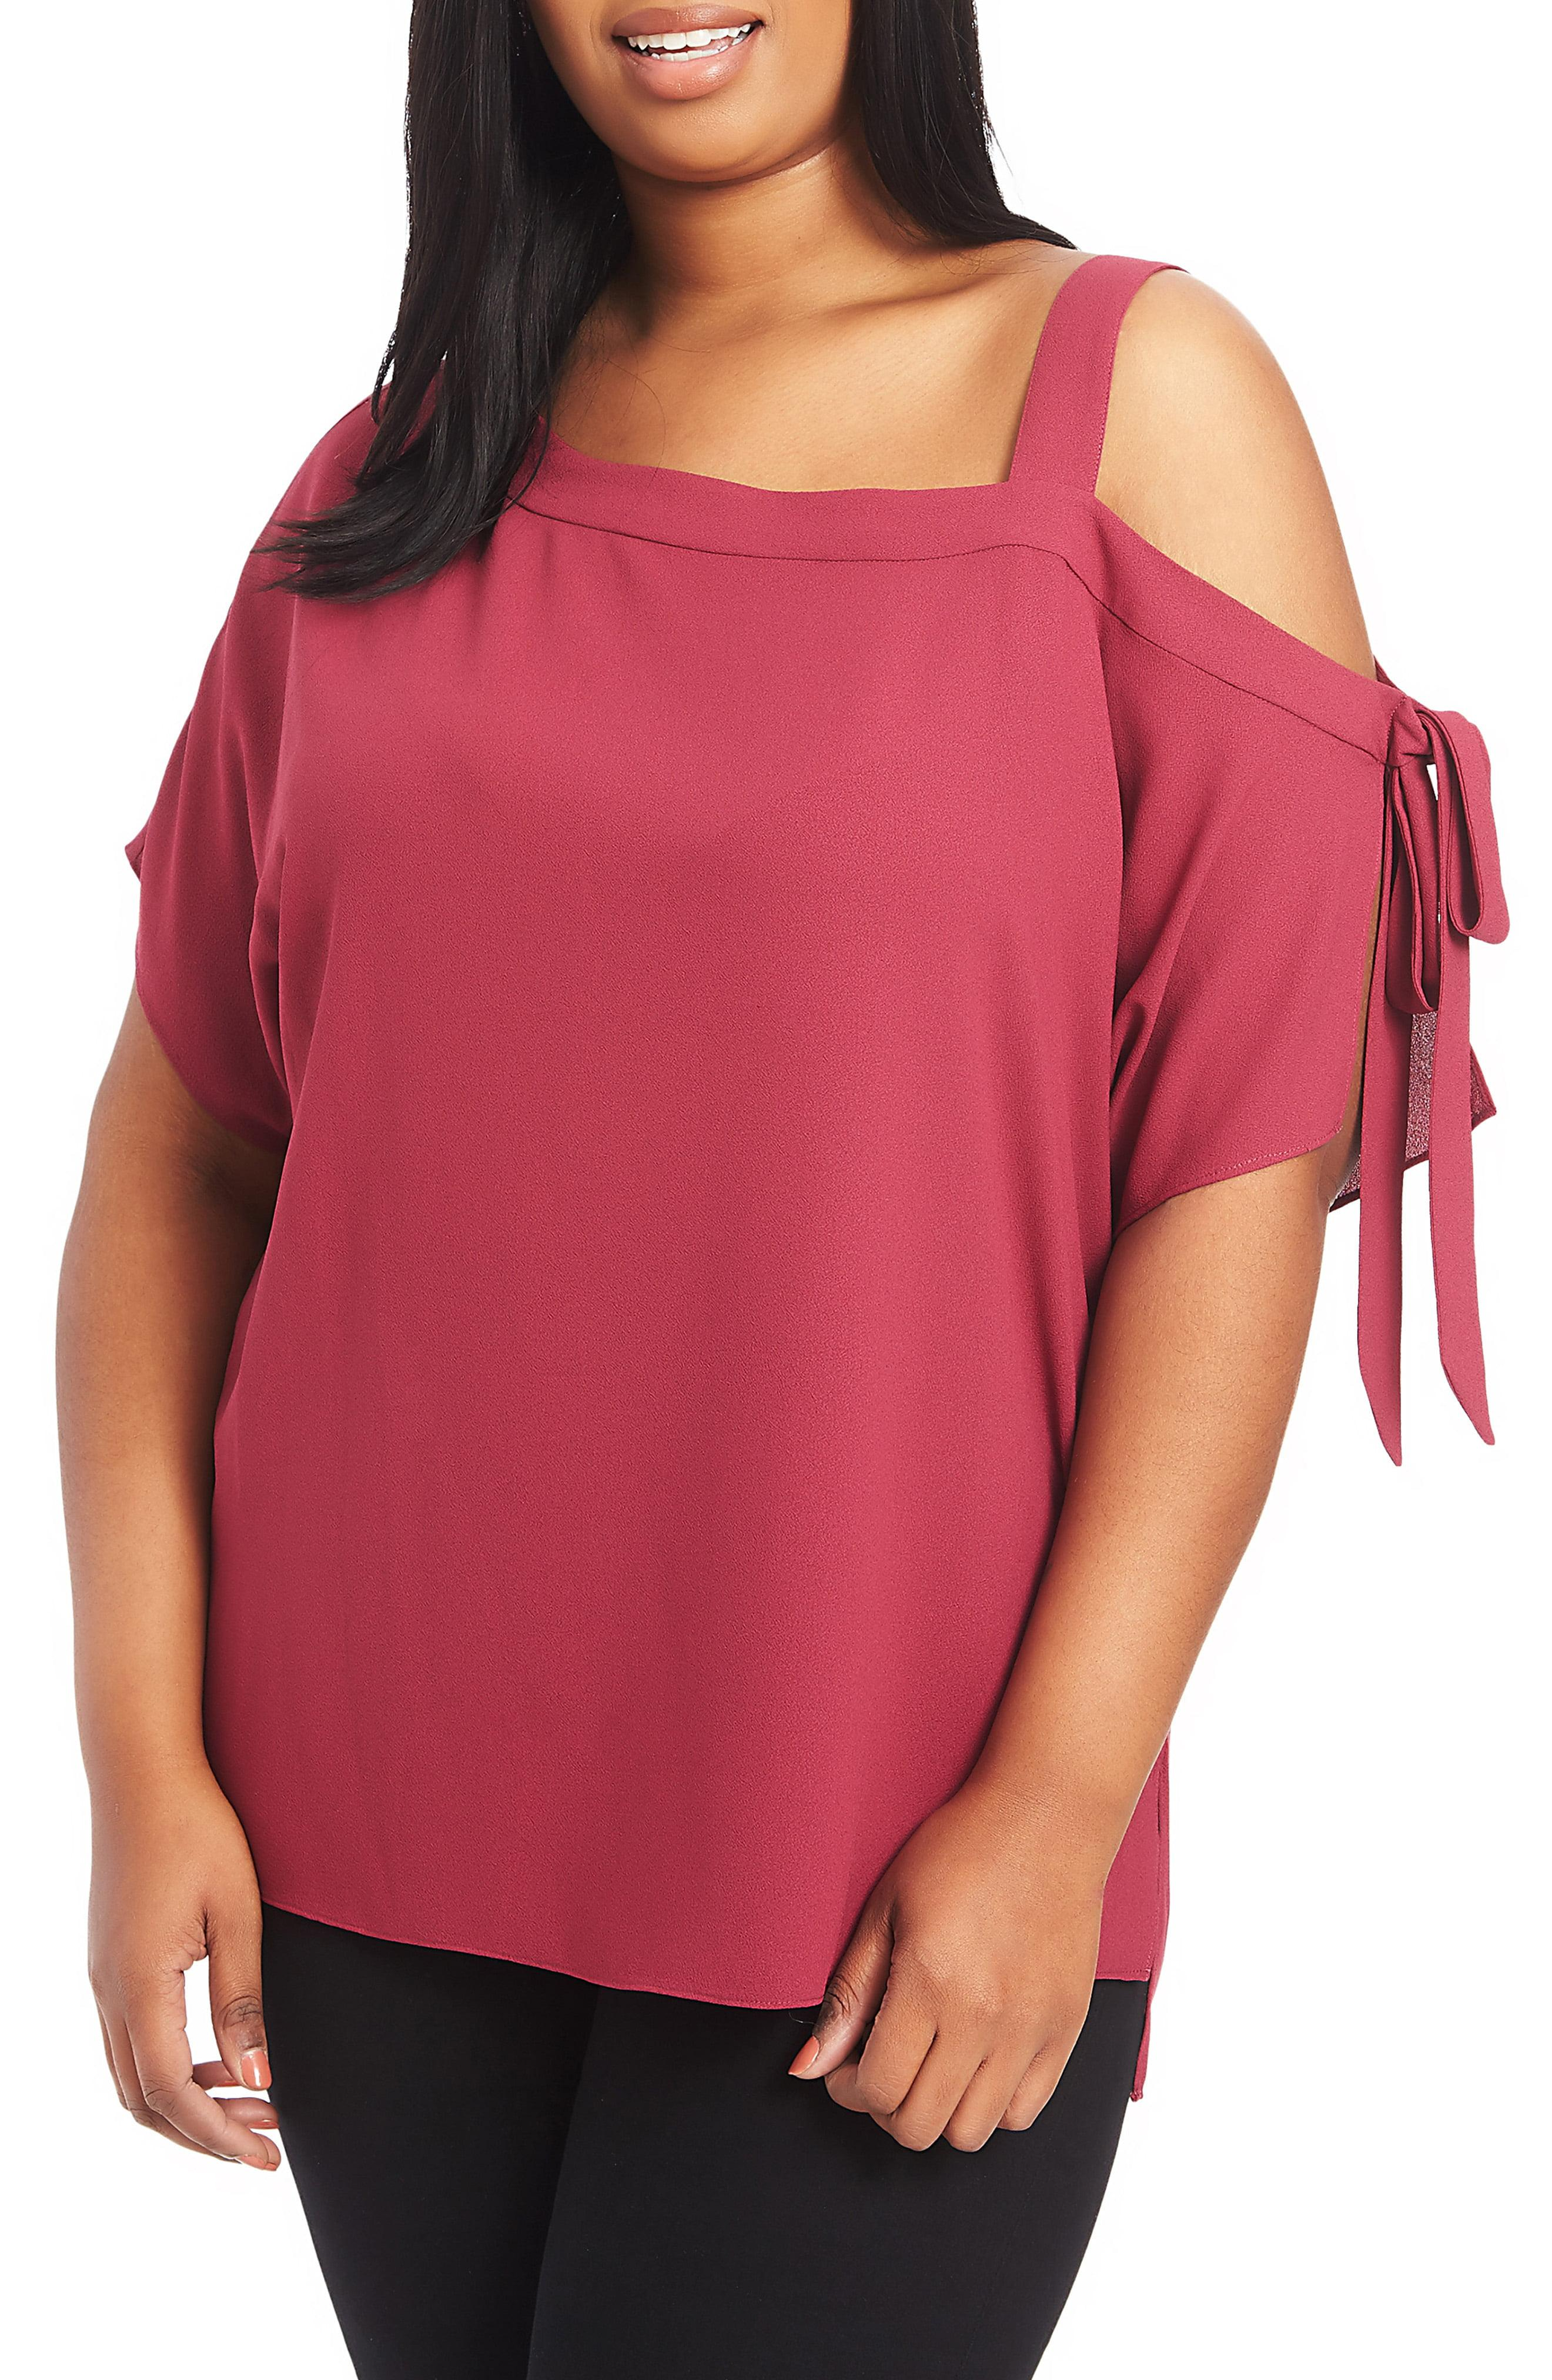 affbcbbf69e94 Lyst - 1.STATE One-shoulder Tie Sleeve Blouse in Pink